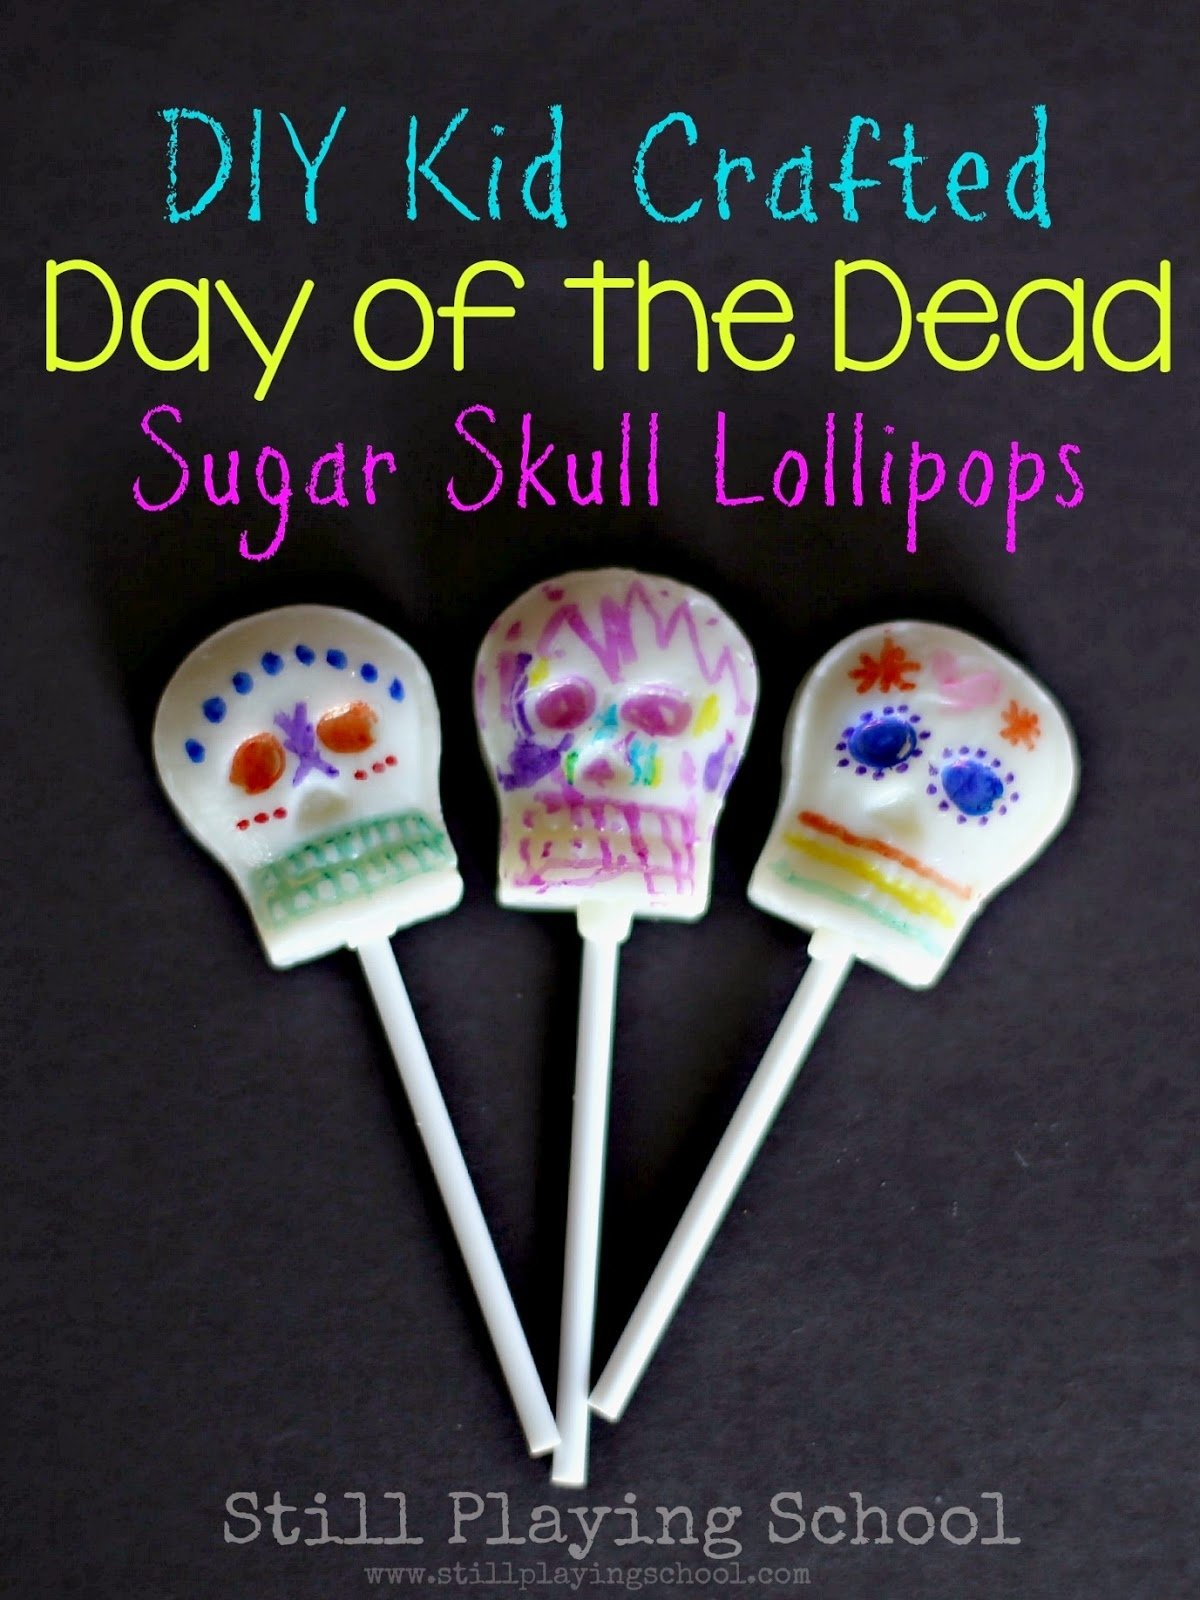 10 Famous Day Of The Dead Craft Ideas day of the dead sugar skull craft for kids still playing school